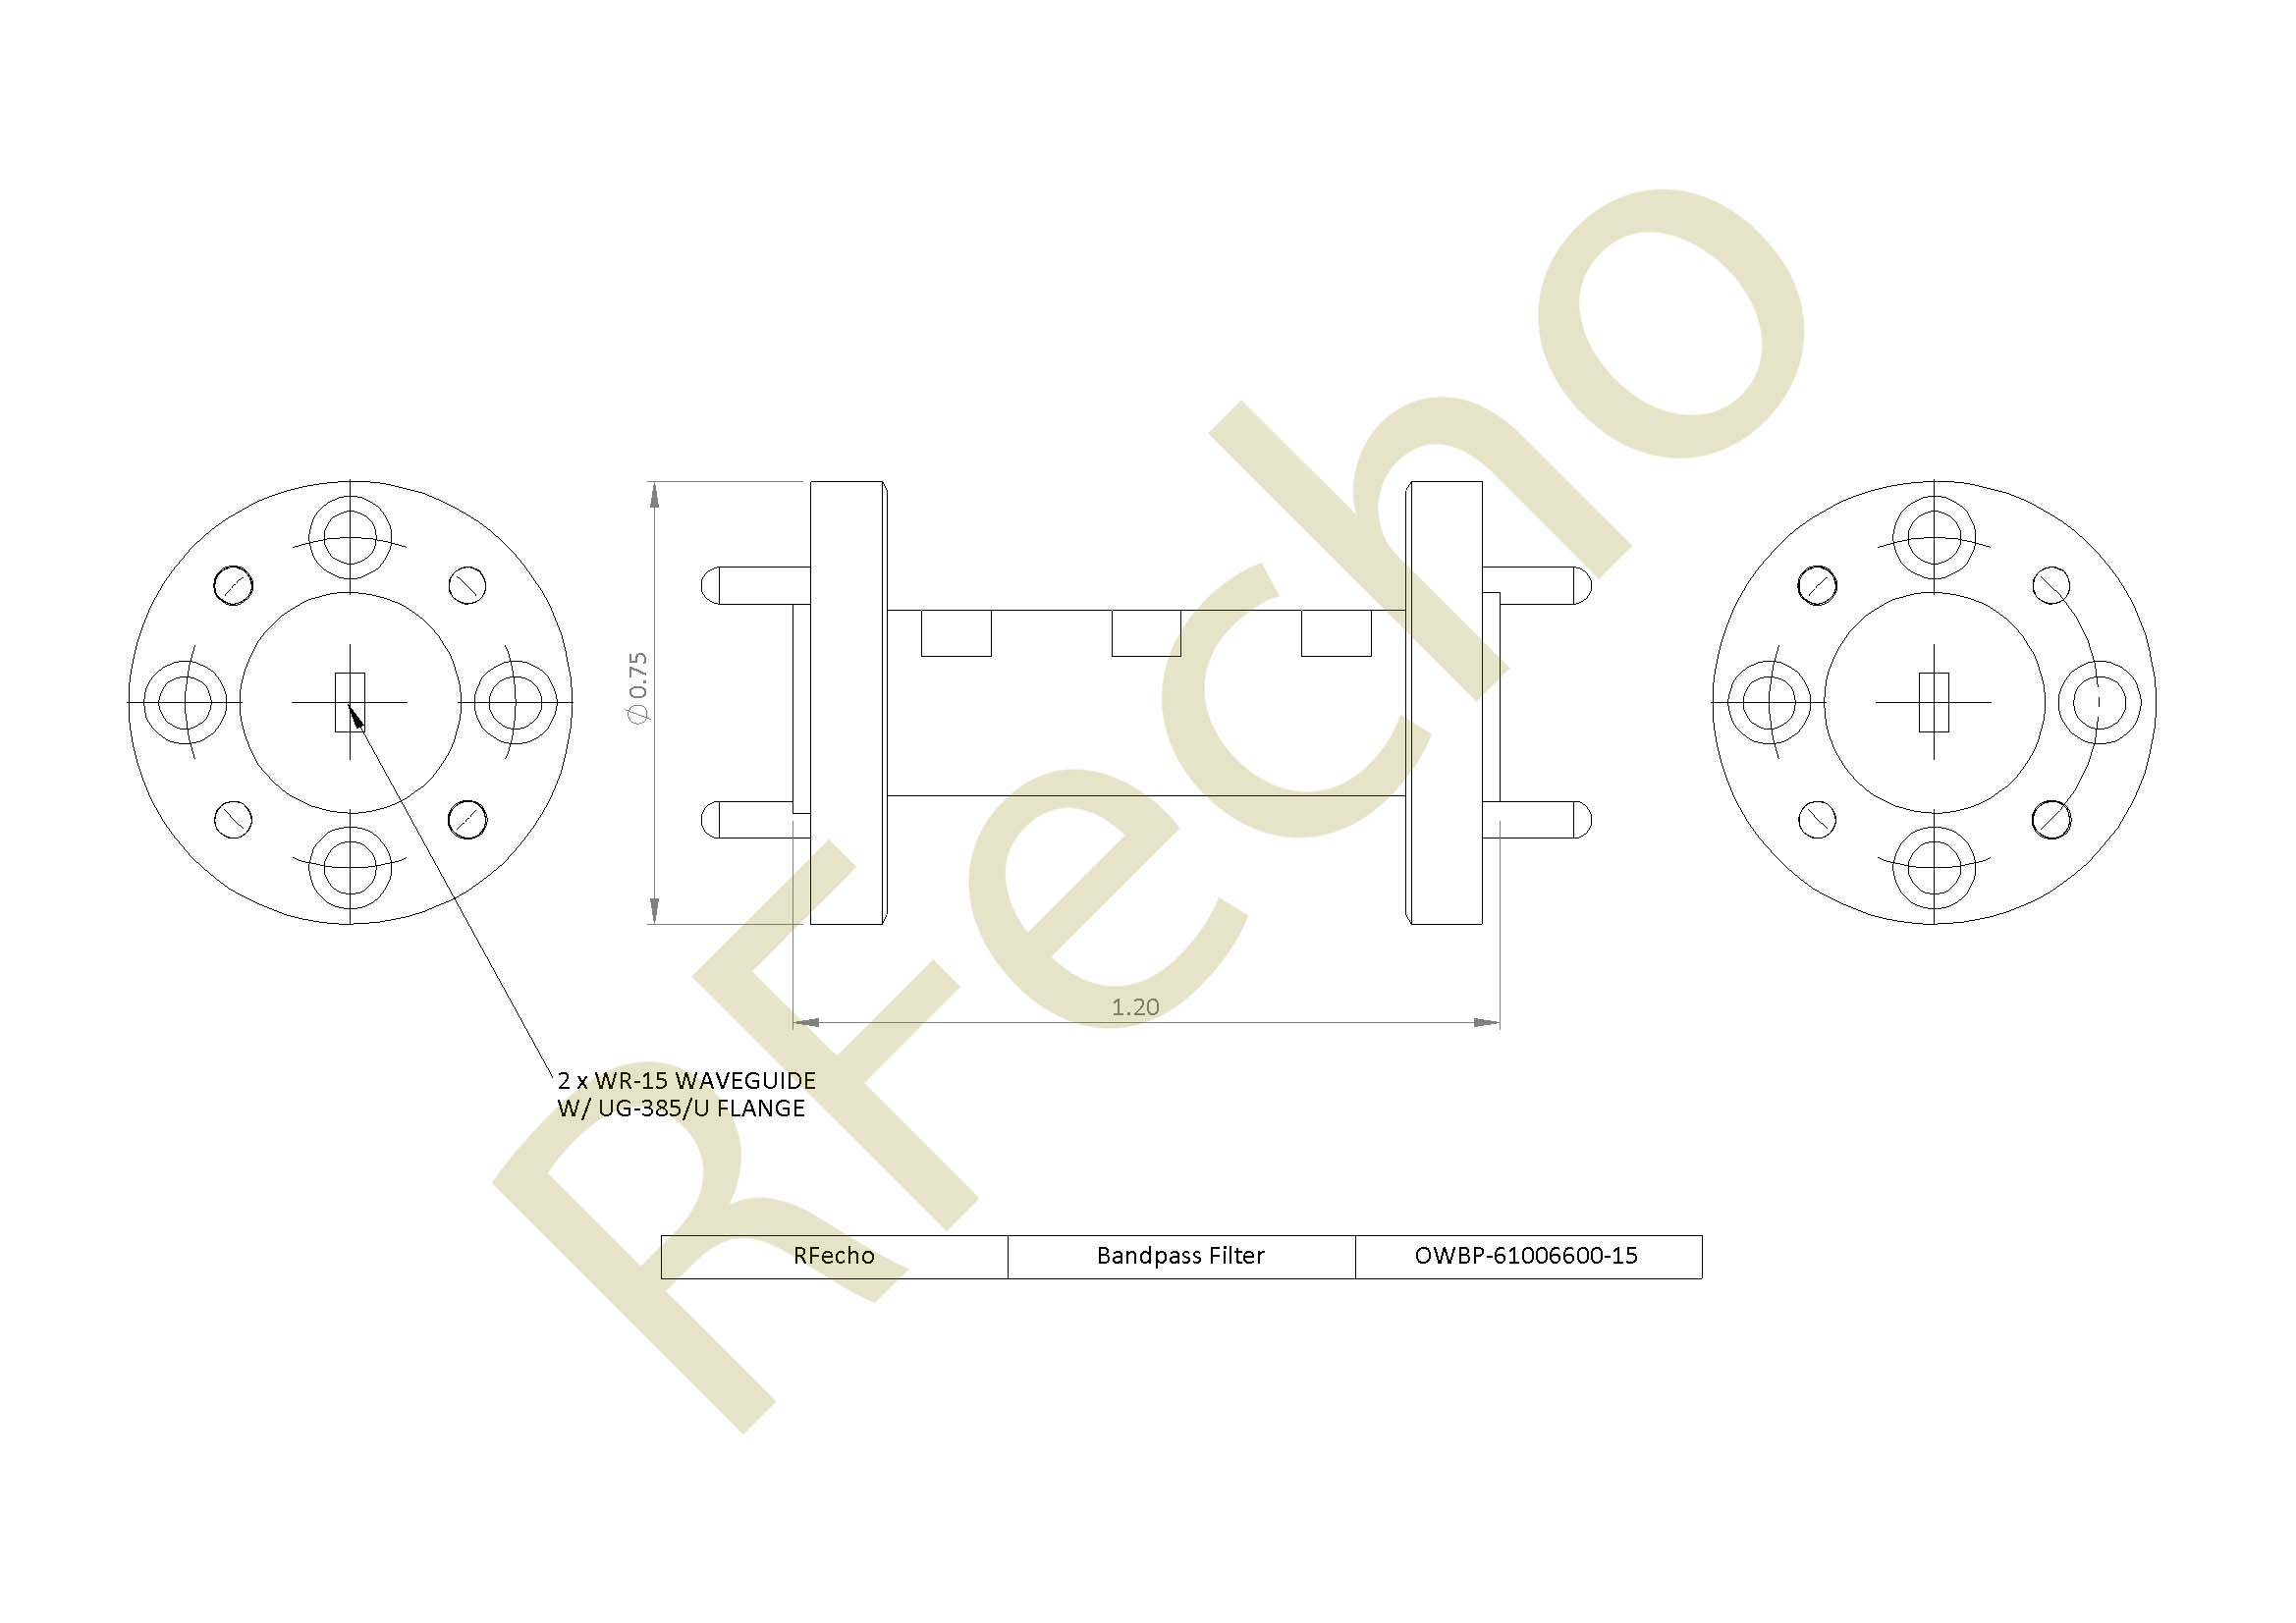 61GHz to 67GHz Waveguide Microwave Bandpass Filter Rejection Frequency 69GHz to 80GHz RF Filter